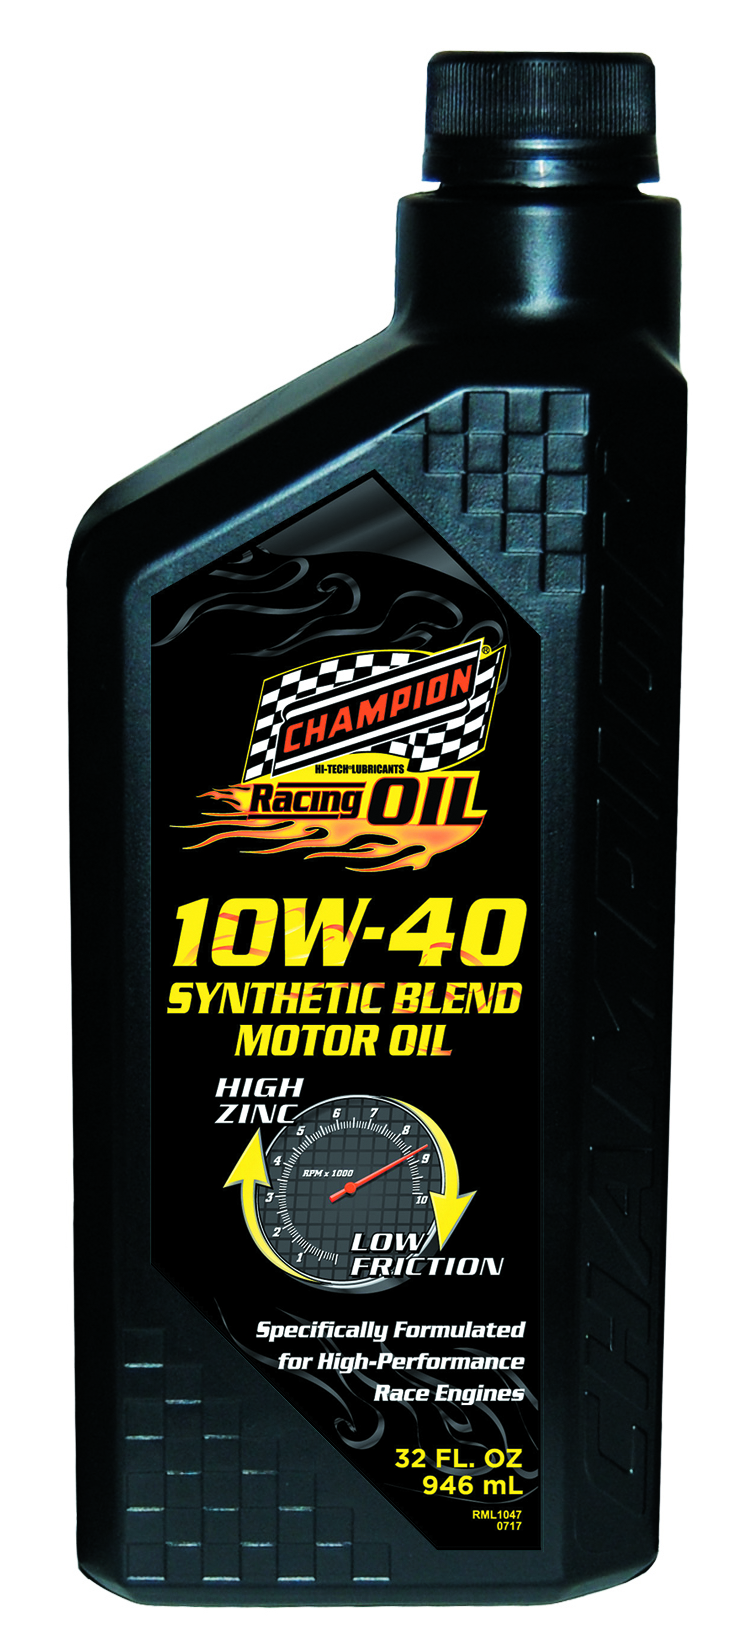 Champion Brands Launches New 10w 40 Racing Motor Oil Aug